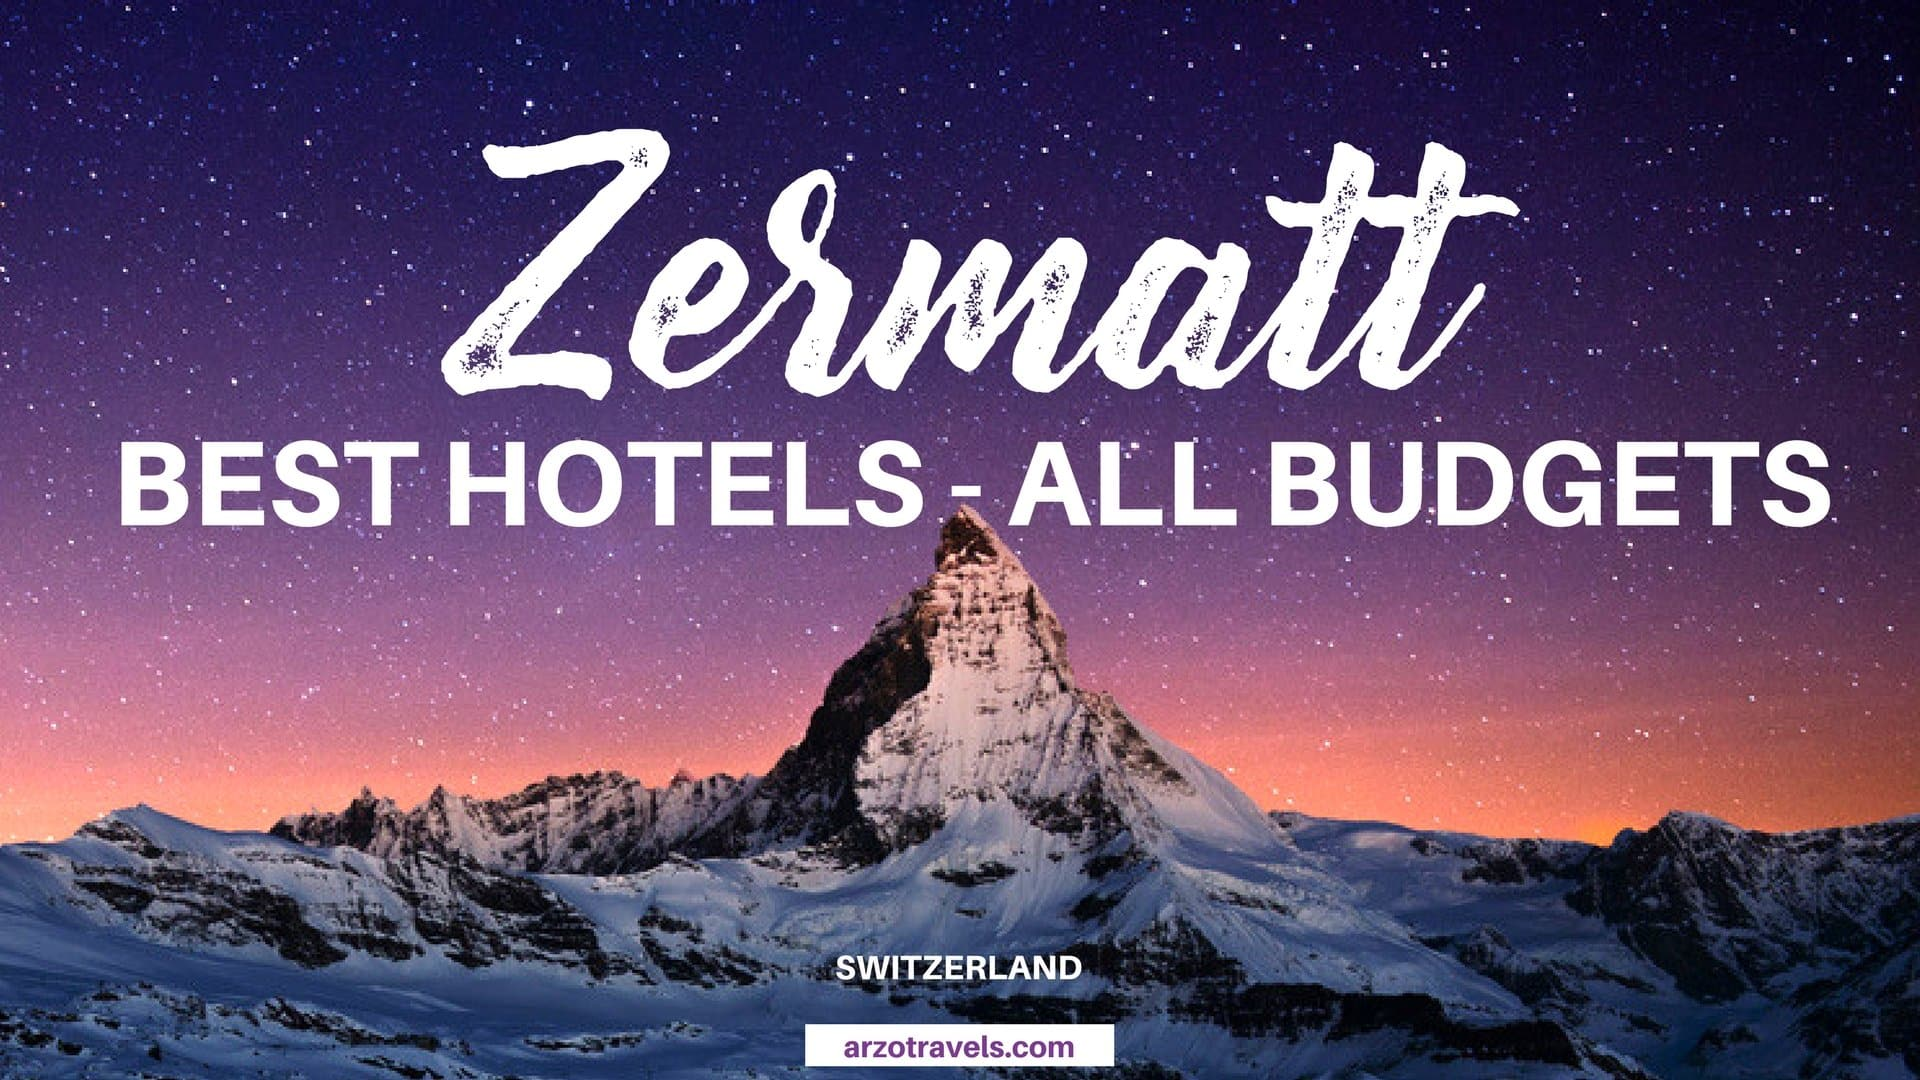 Zermatt where to stay. All budgets and best hotels for Zermatt